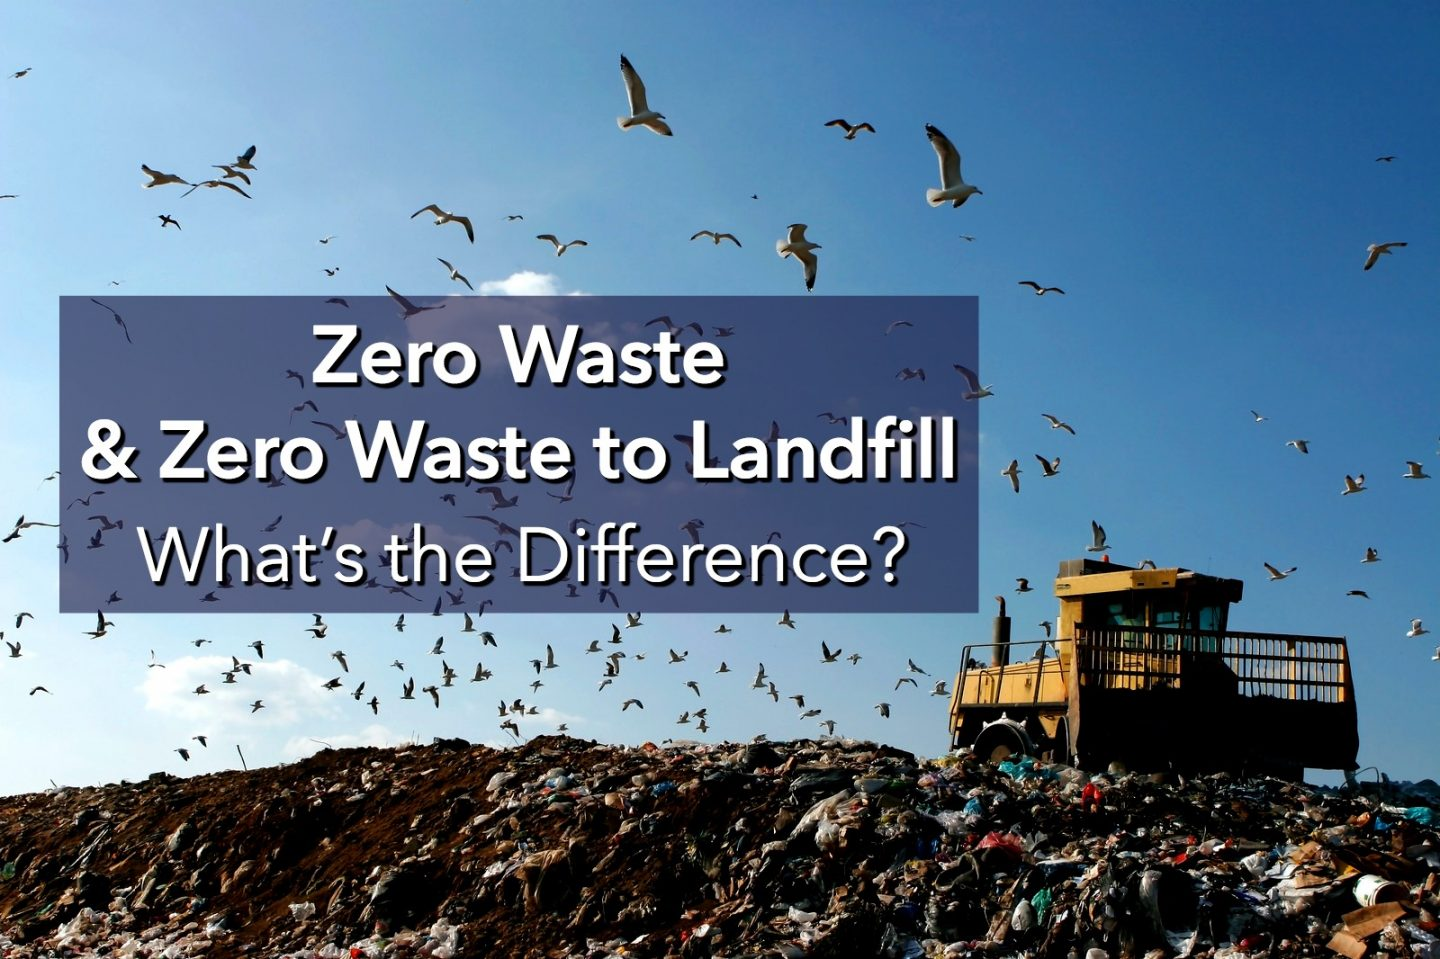 Zero Waste & Zero Waste to Landfill. What's the Difference?